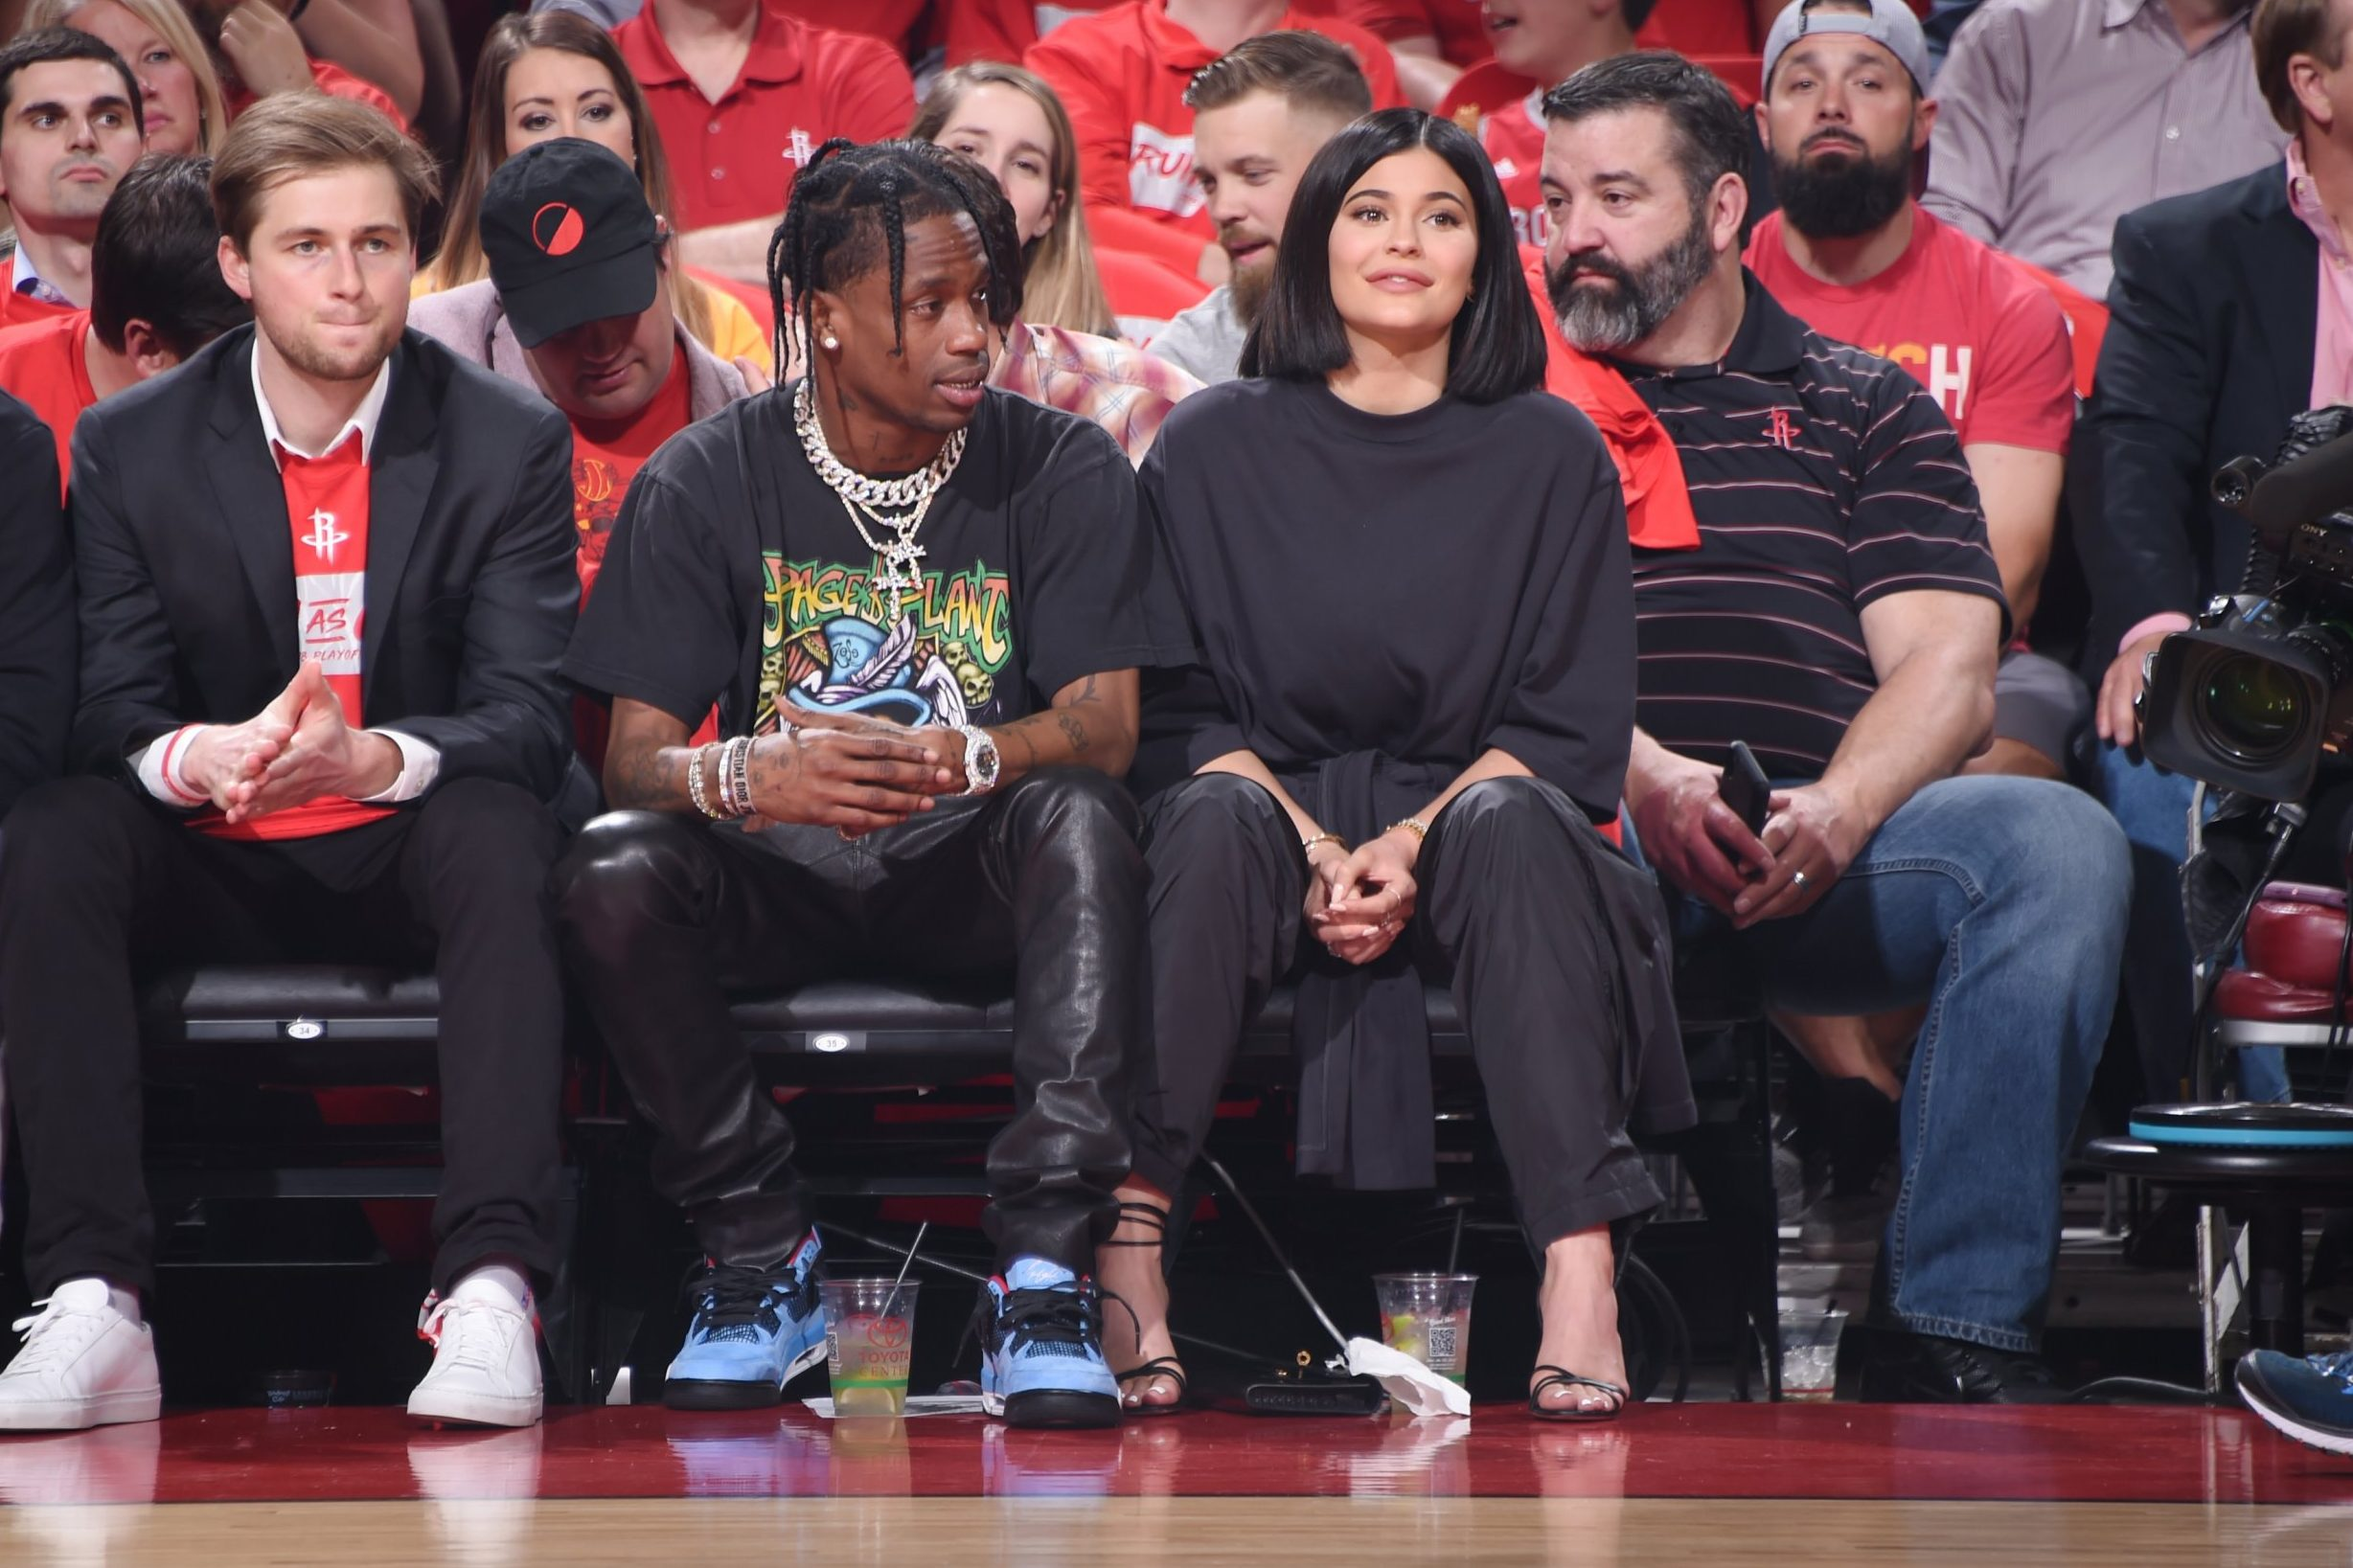 HOUSTON, TX - APRIL 18: Travis Scott and Kylie Jenner attend the game as the Minnesota Timberwolves take on the Houston Rockets during Game Two of Round One of the 2018 NBA Playoffs on April 18, 2018 at the Toyota Center in Houston, Texas. NOTE TO USER: User expressly acknowledges and agrees that, by downloading and or using this photograph, User is consenting to the terms and conditions of the Getty Images License Agreement. Mandatory Copyright Notice: Copyright 2018 NBAE (Photo by Bill Baptist/NBAE via Getty Images)